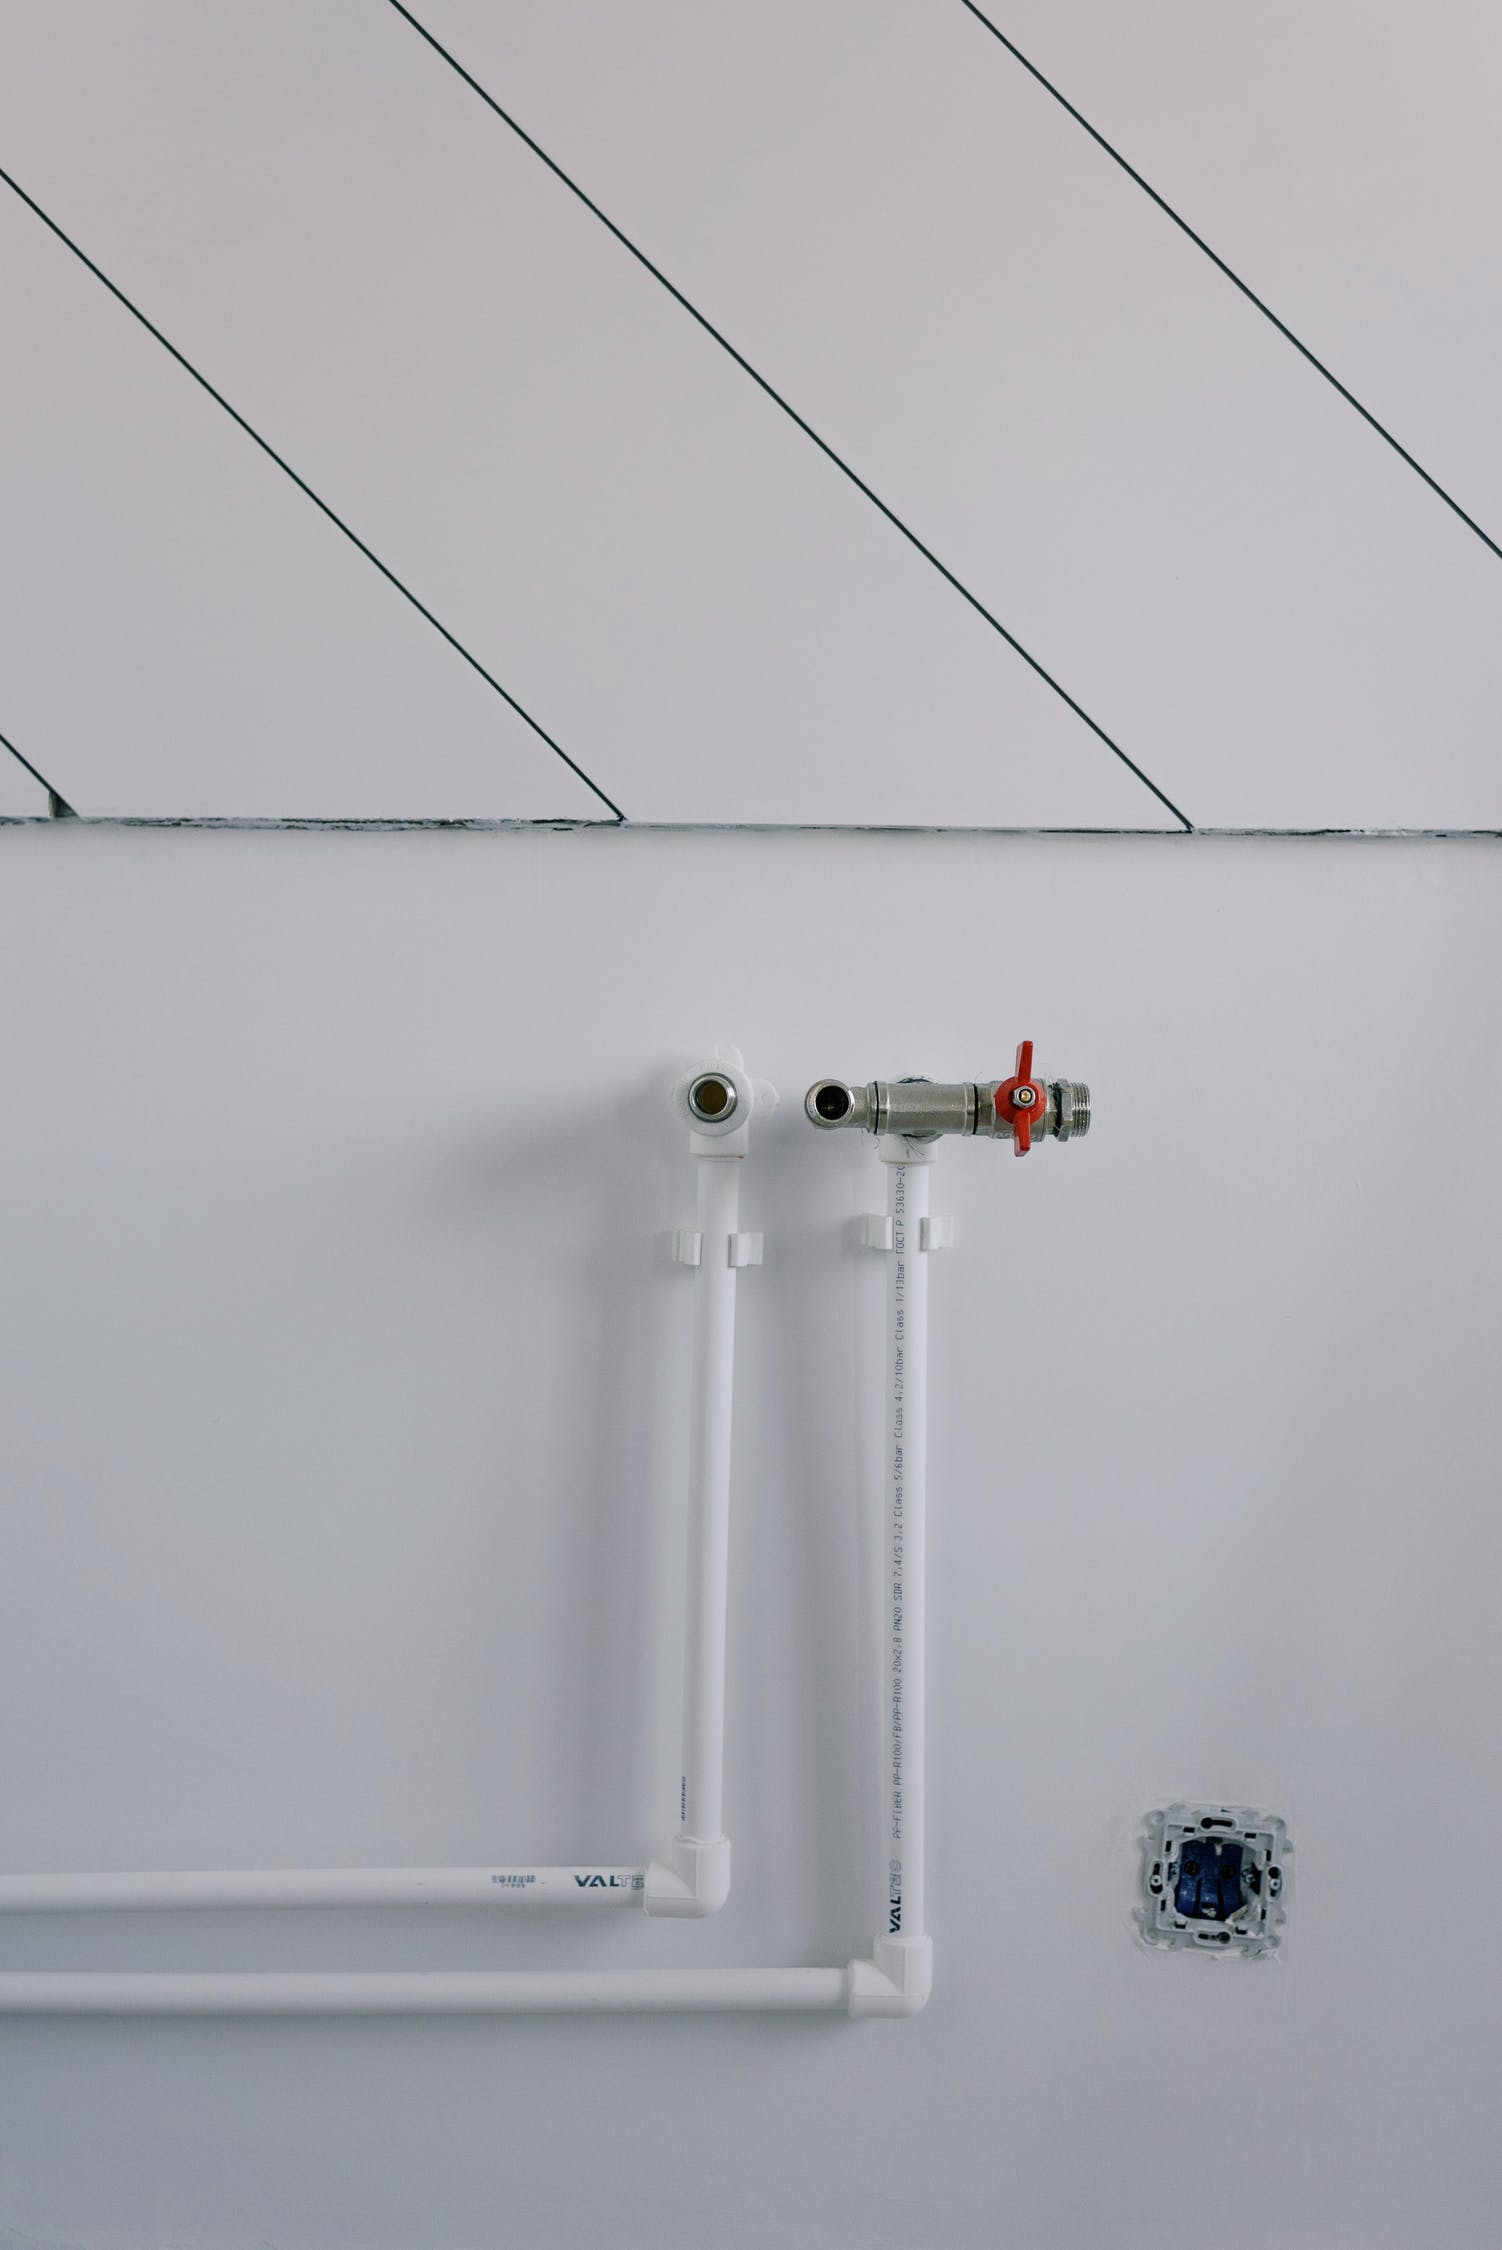 Pipes of radiator in empty room